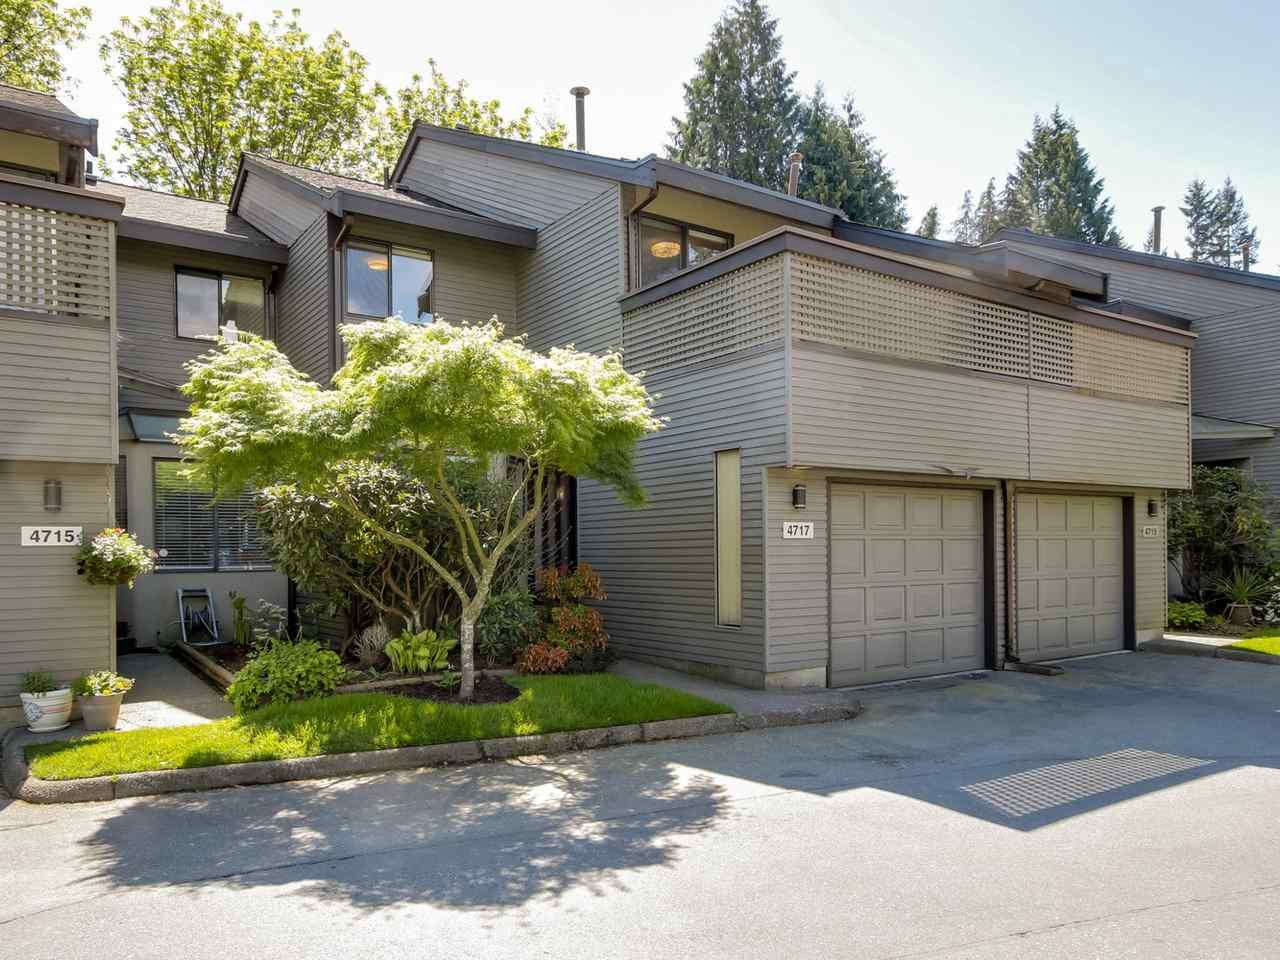 Main Photo: 4717 GLENWOOD Avenue in North Vancouver: Canyon Heights NV Townhouse for sale : MLS®# R2062249